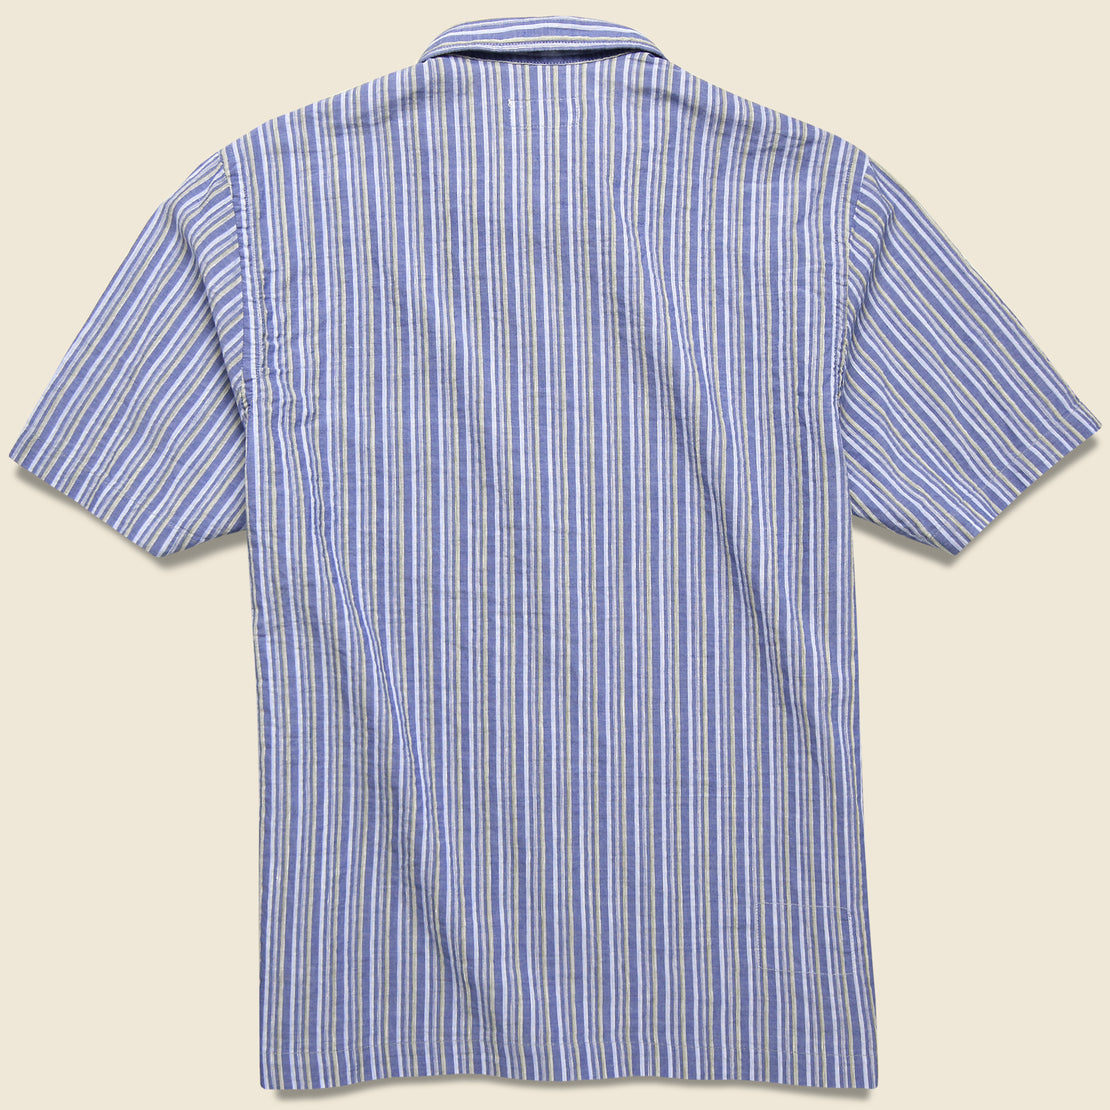 Road Shirt - Blue Elton 2 Stripe